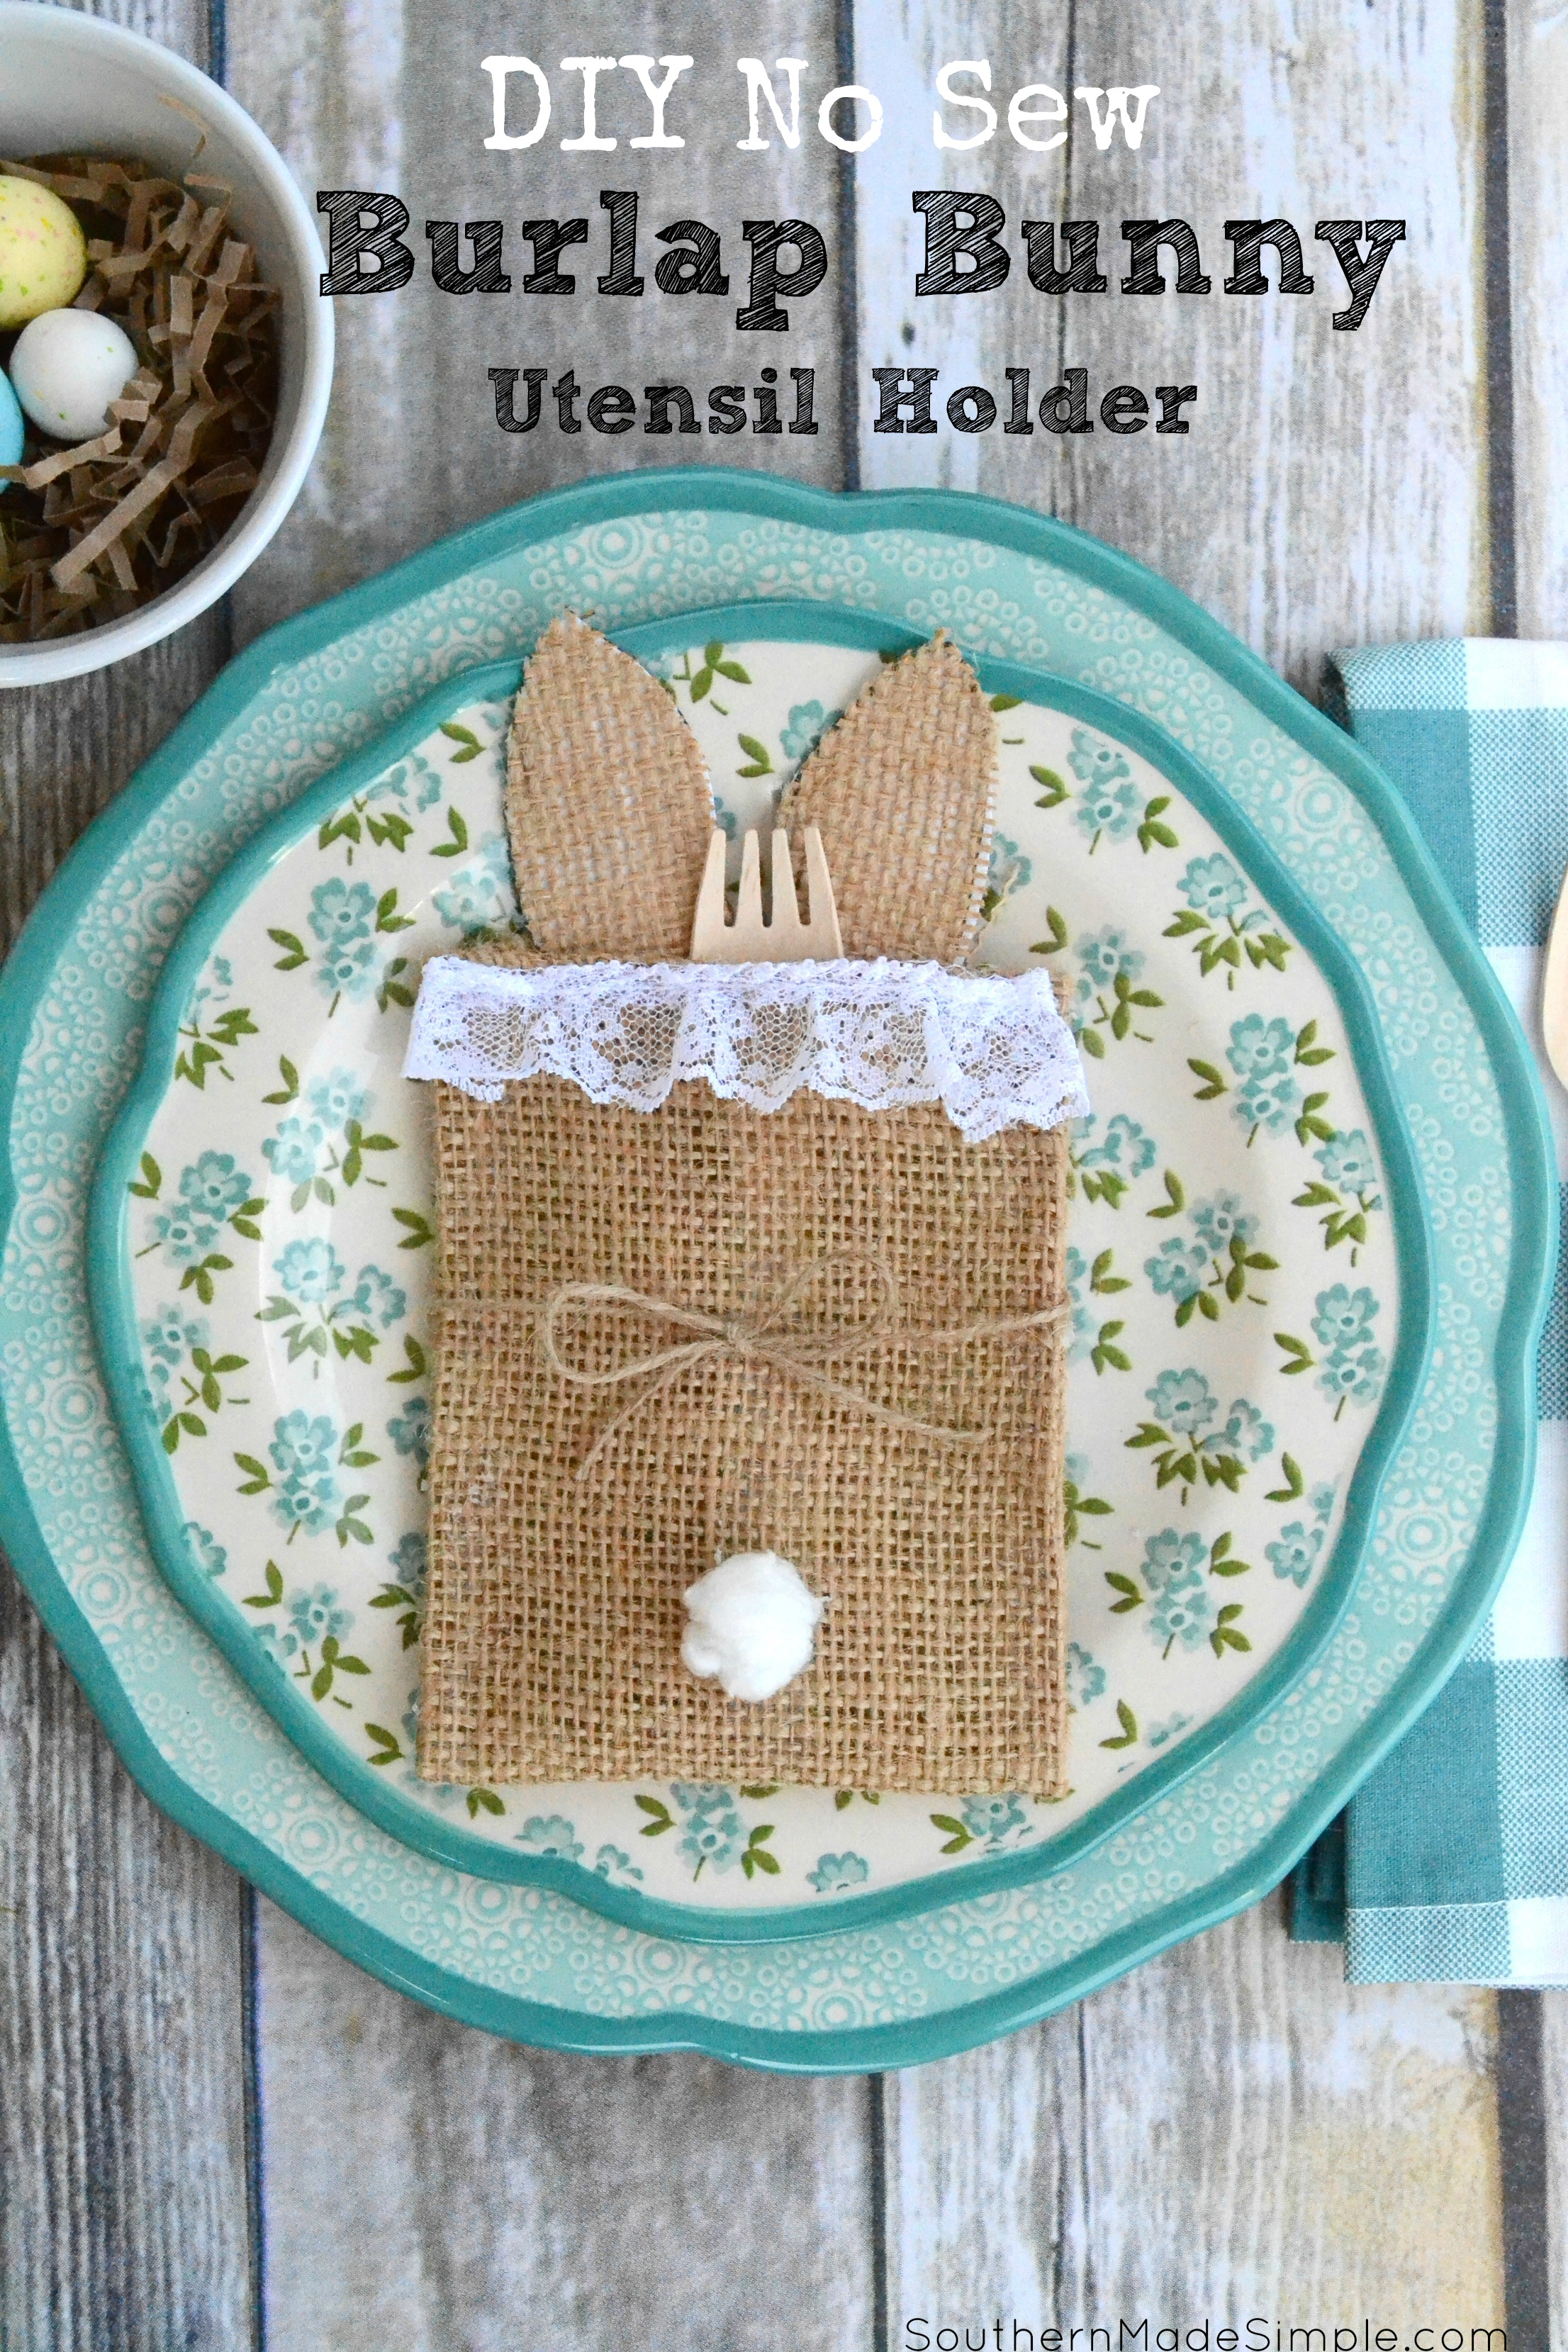 This simple DIY no sew bunny utensil holder is the perfect thing to spruce up your spring tablescape! #SweetenYourSpring #ad